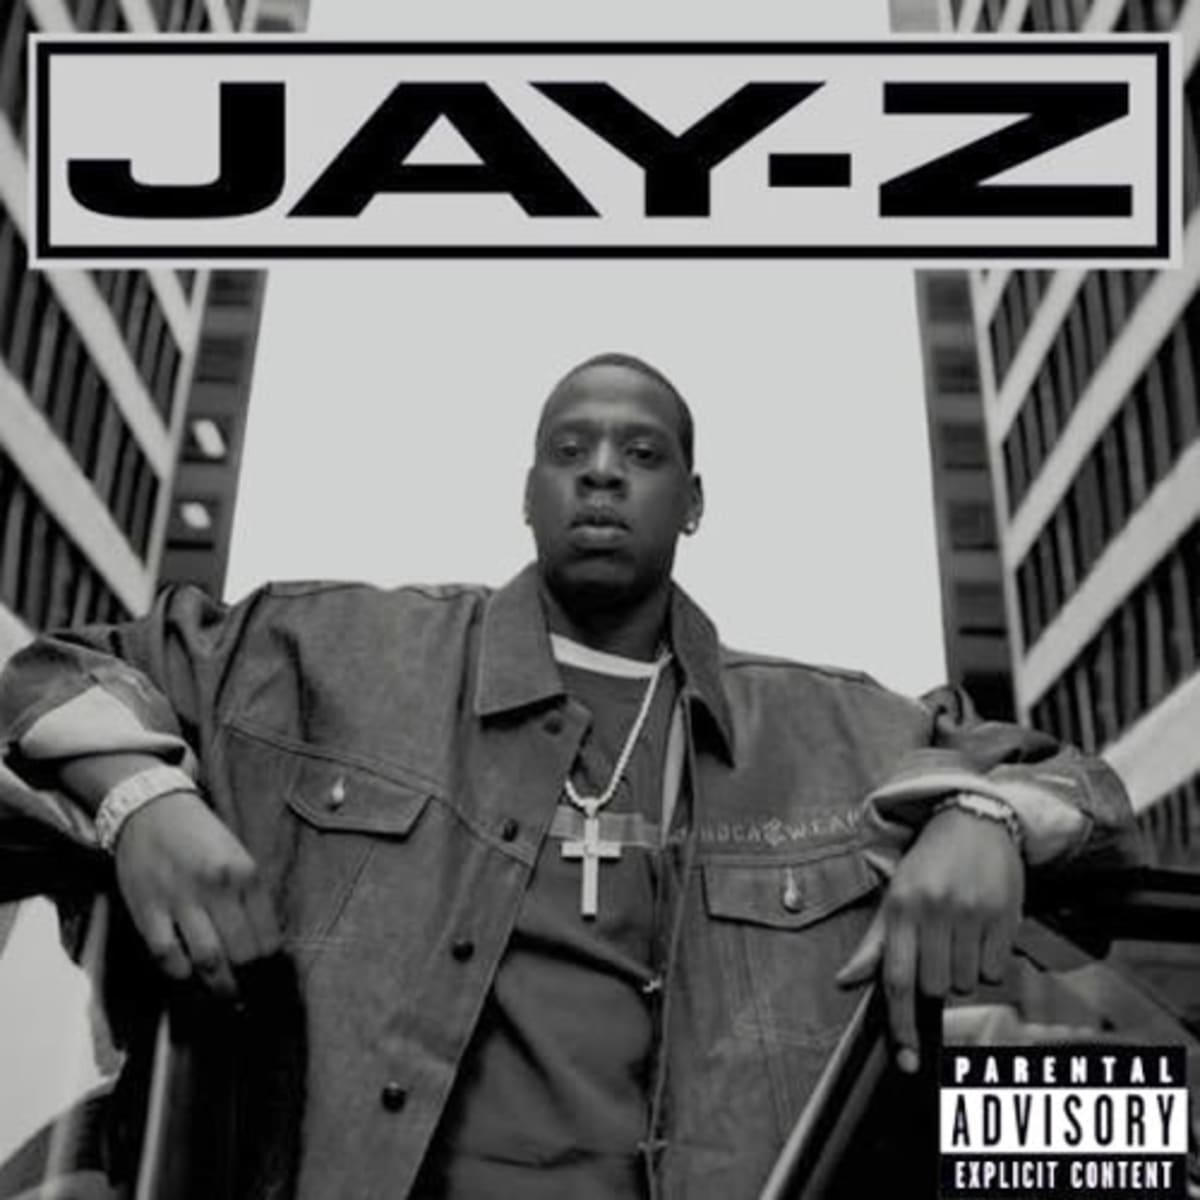 Jays vol 3 is better than the black album complex malvernweather Choice Image